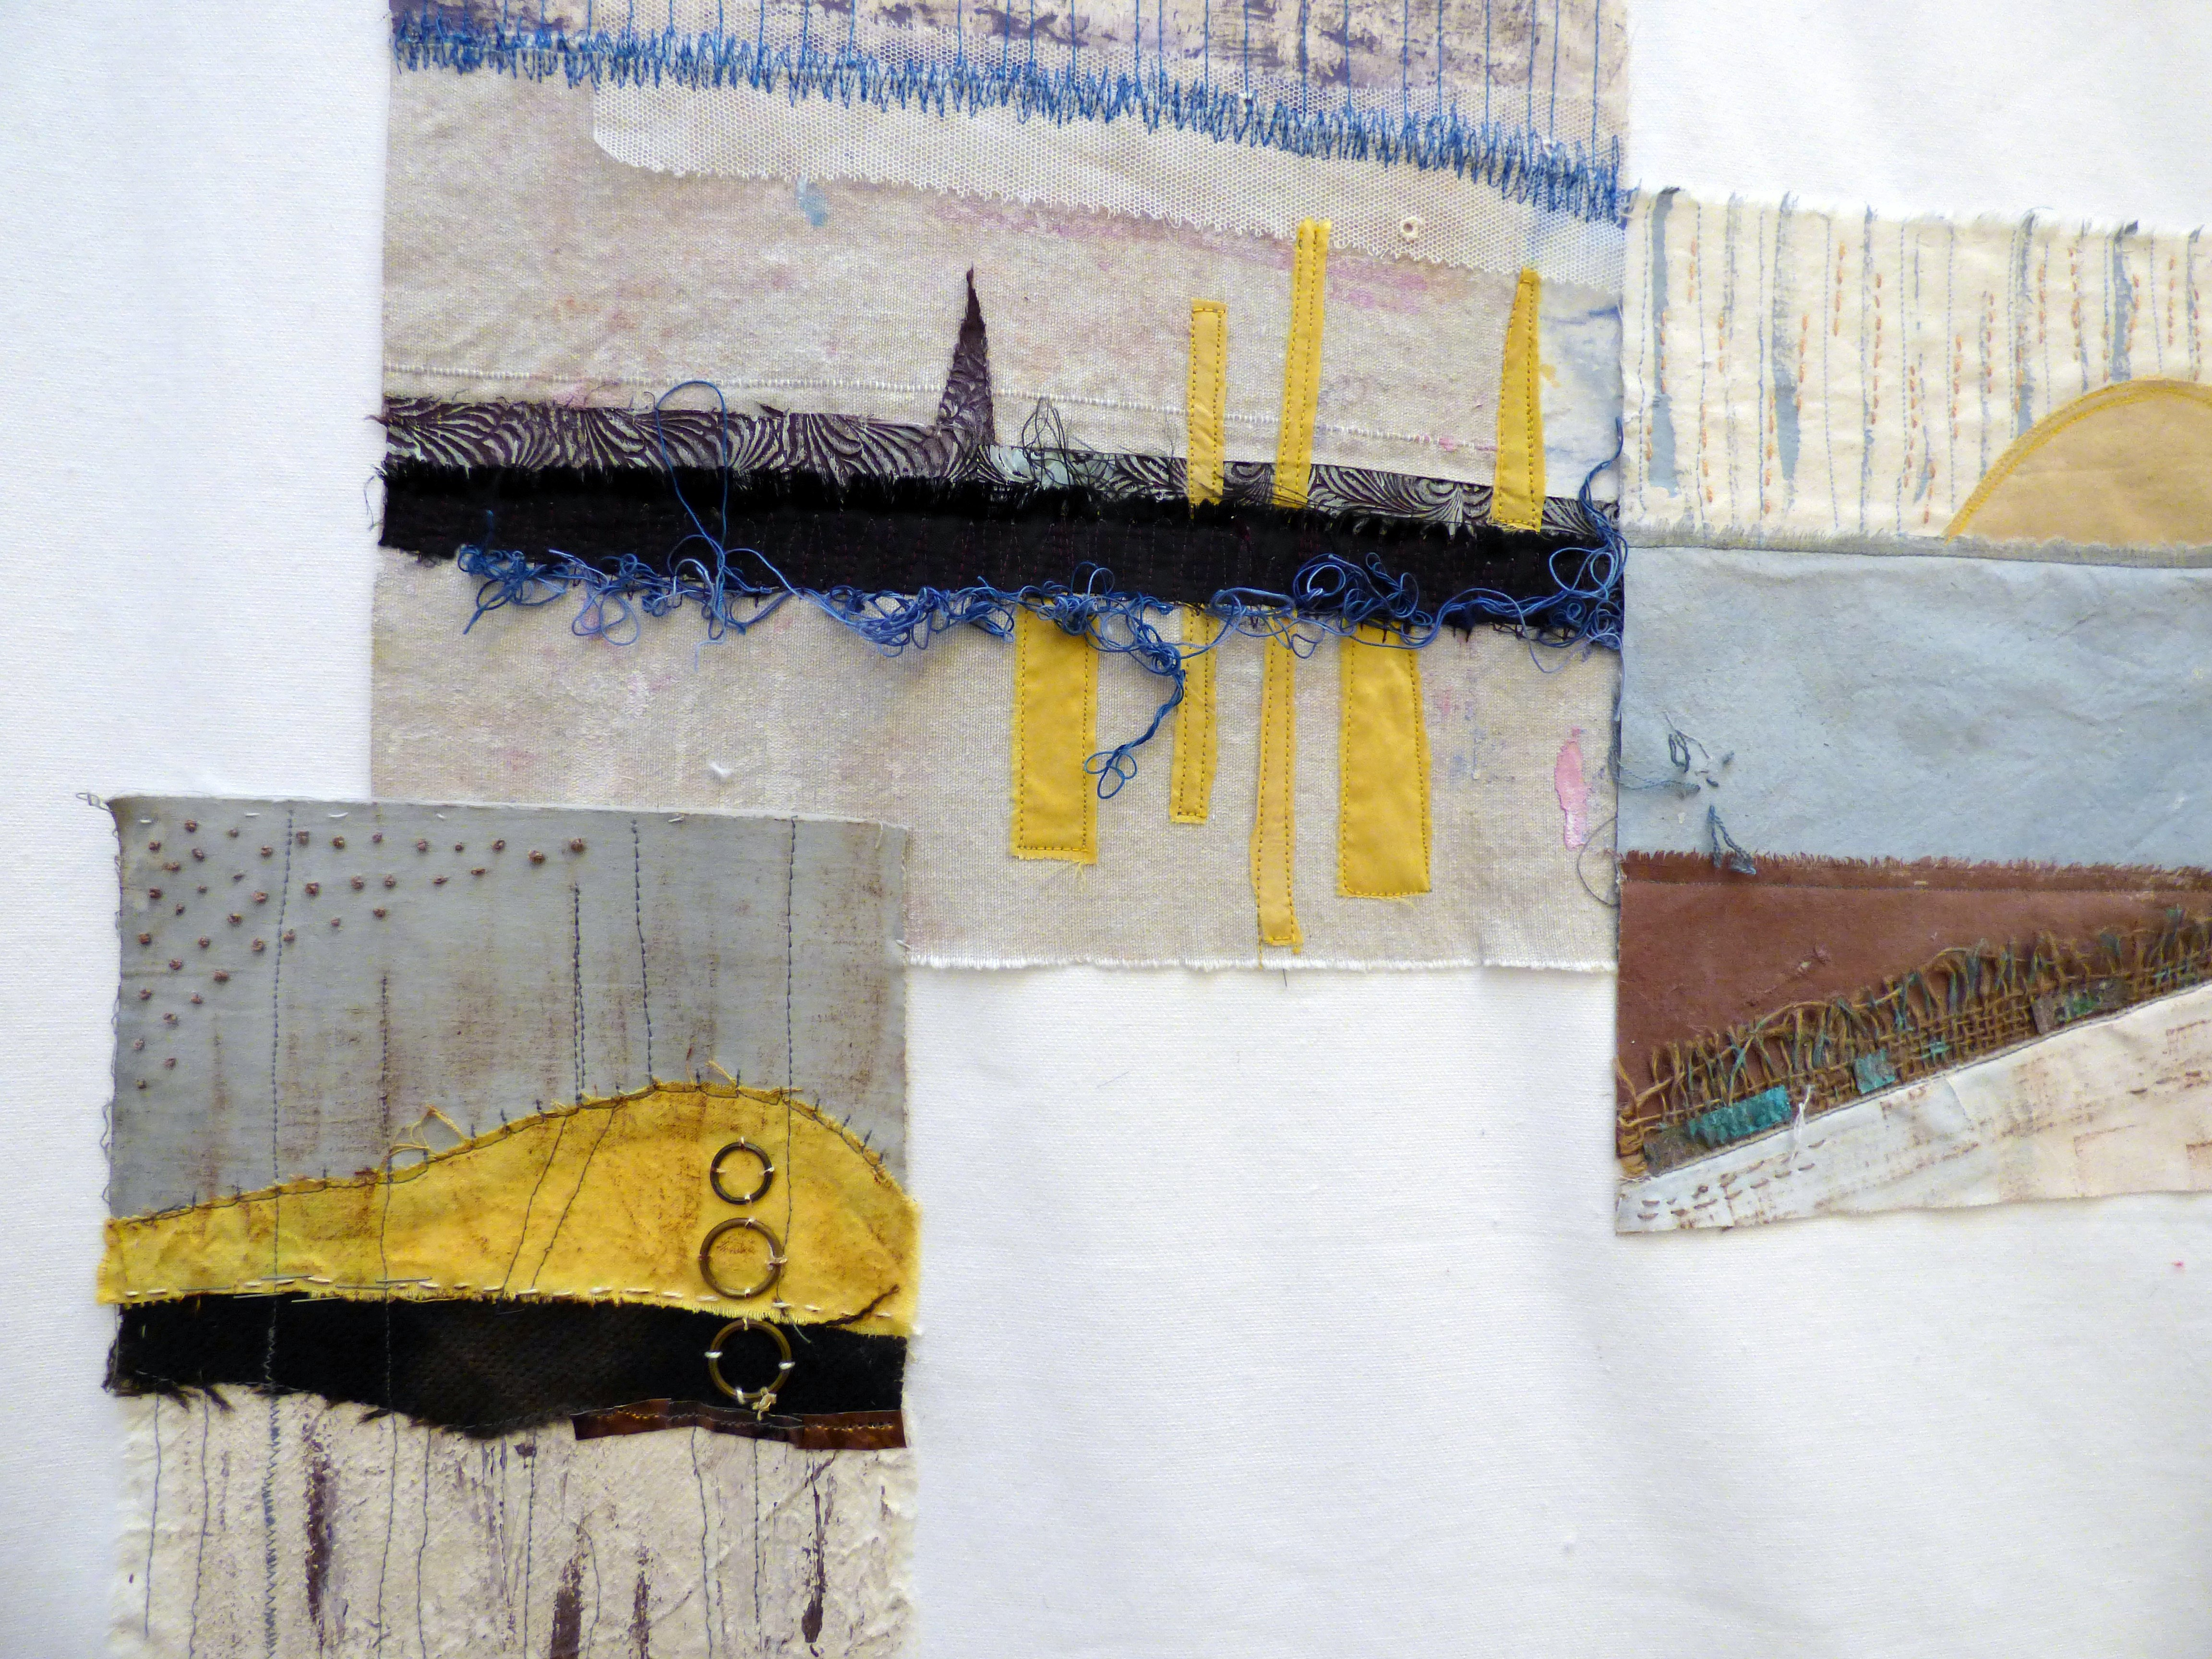 (detail) On THE EDGE OF MEMORIES by Denise R. Williams, Textile 21, Aug 2018. Dyes, fabric paint, pen, fabric, stitch